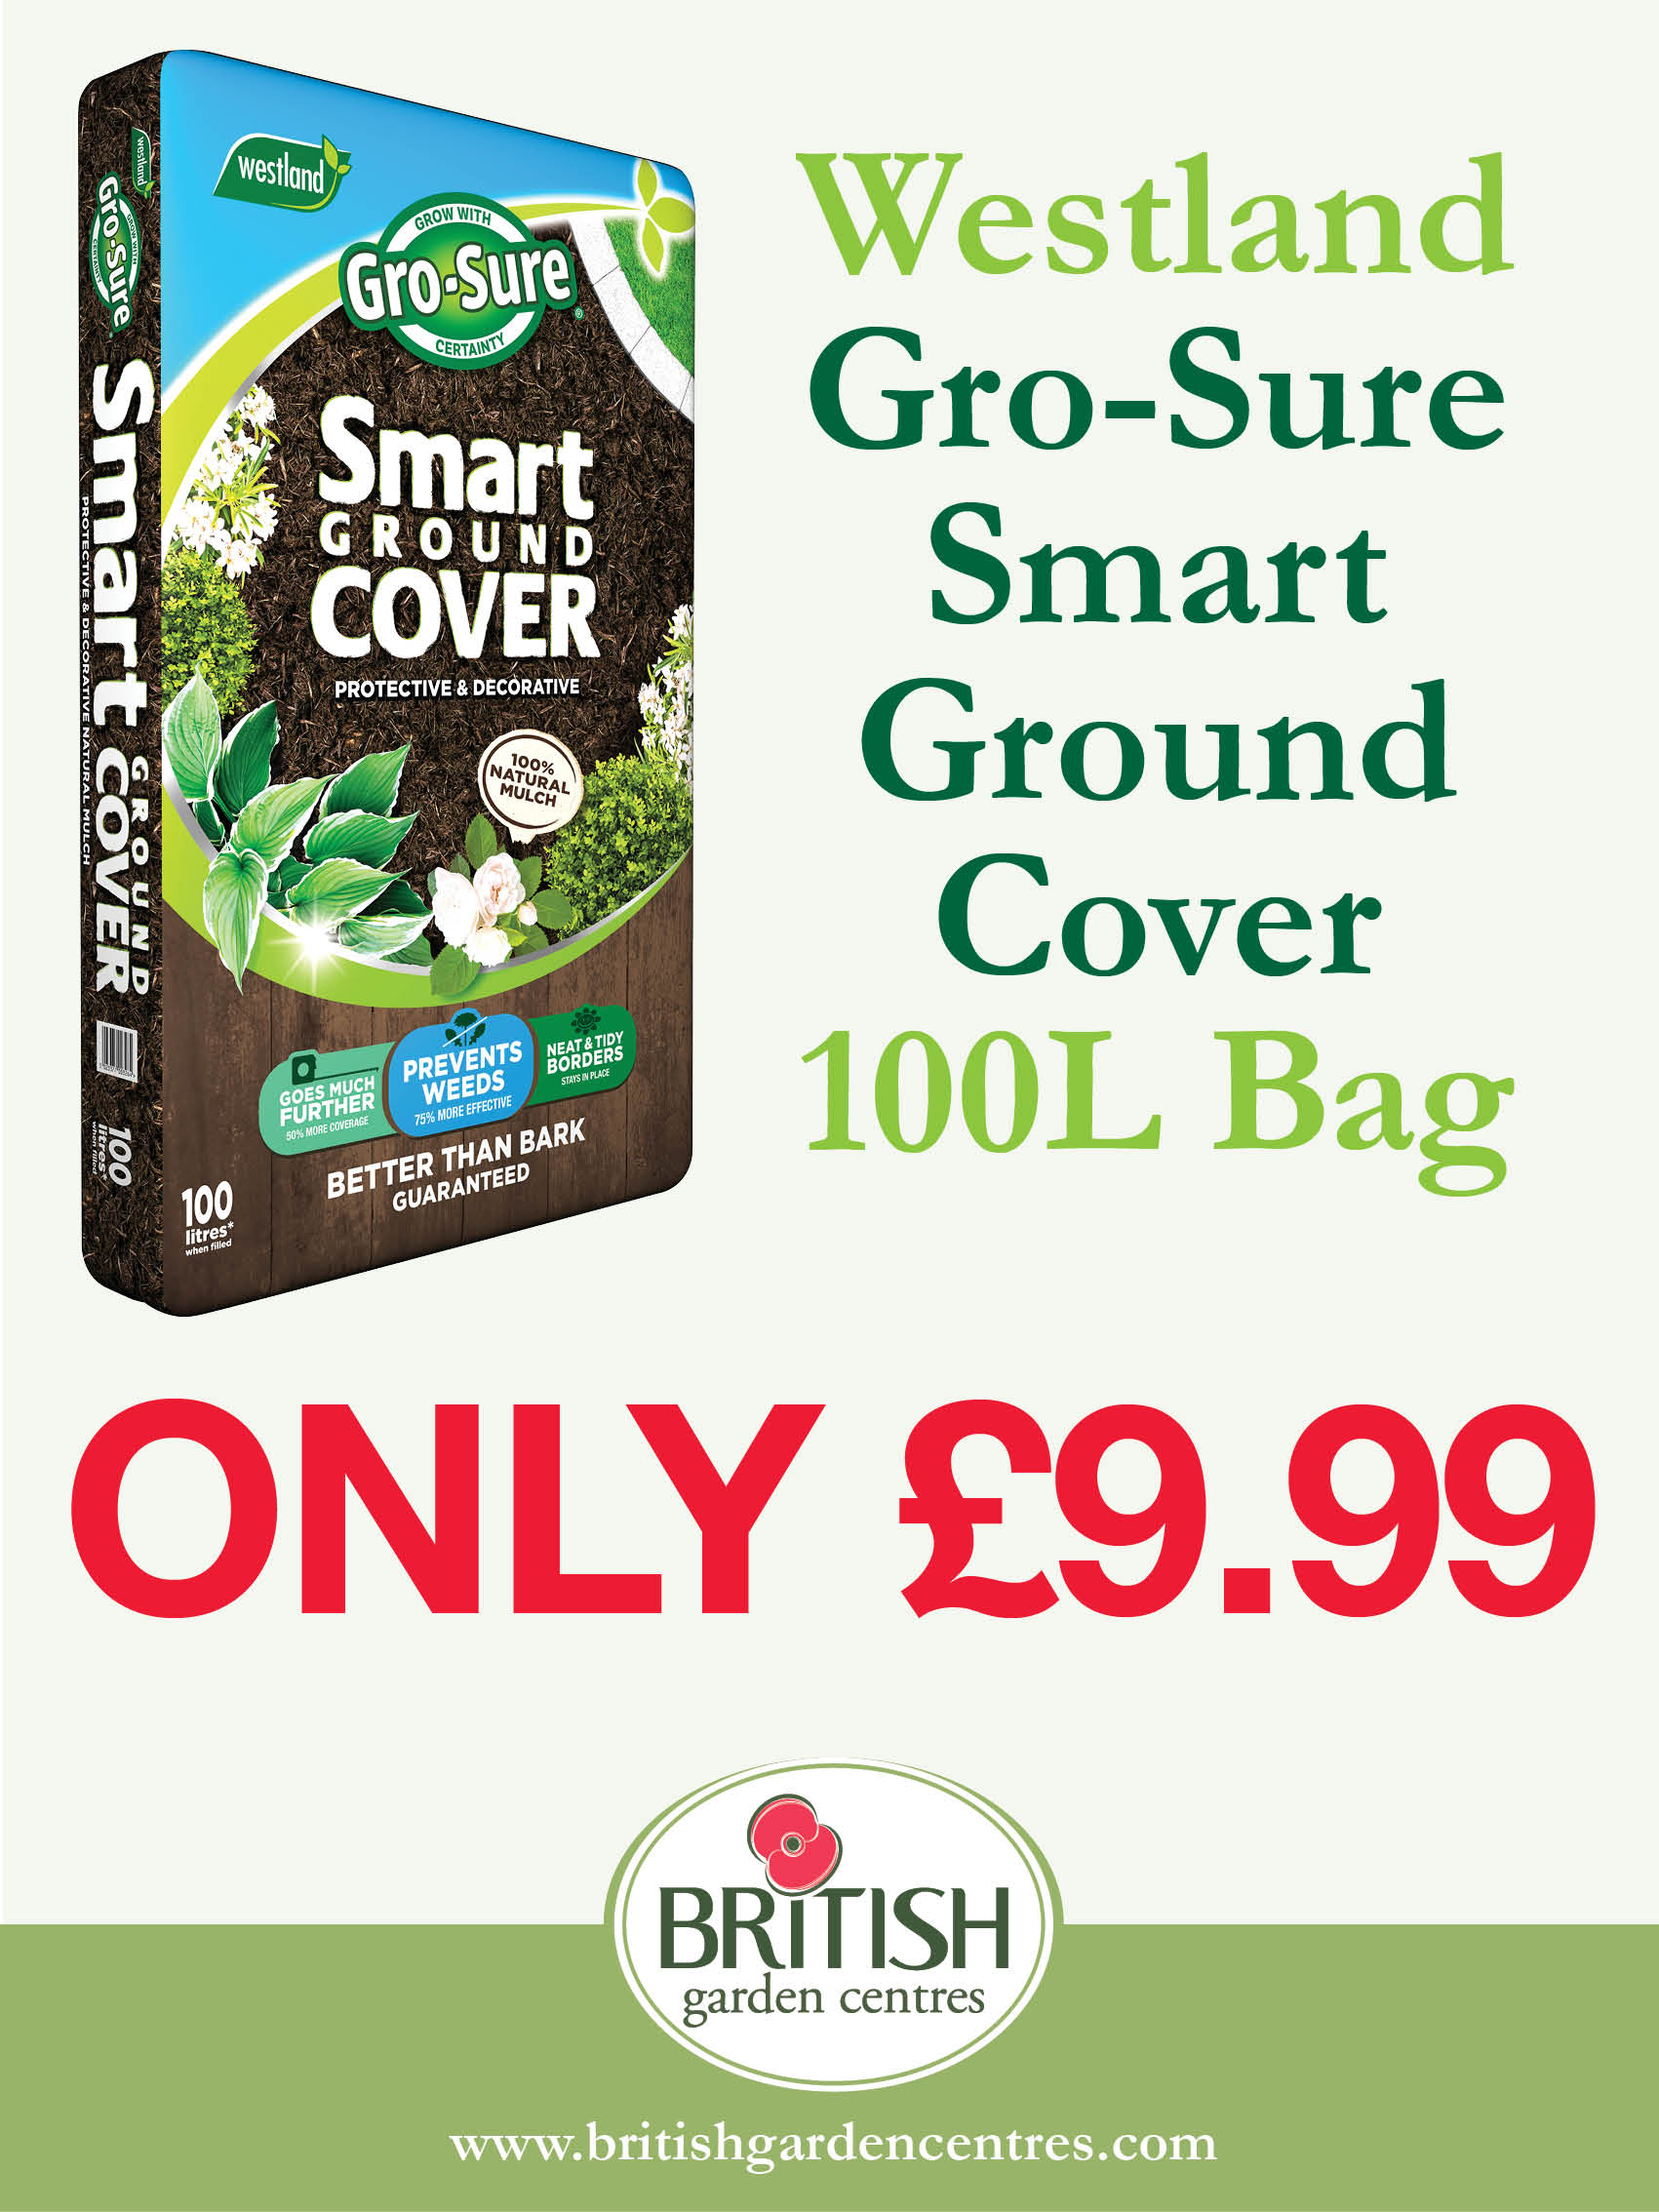 Gro-Sure Smart Ground Cover 100L